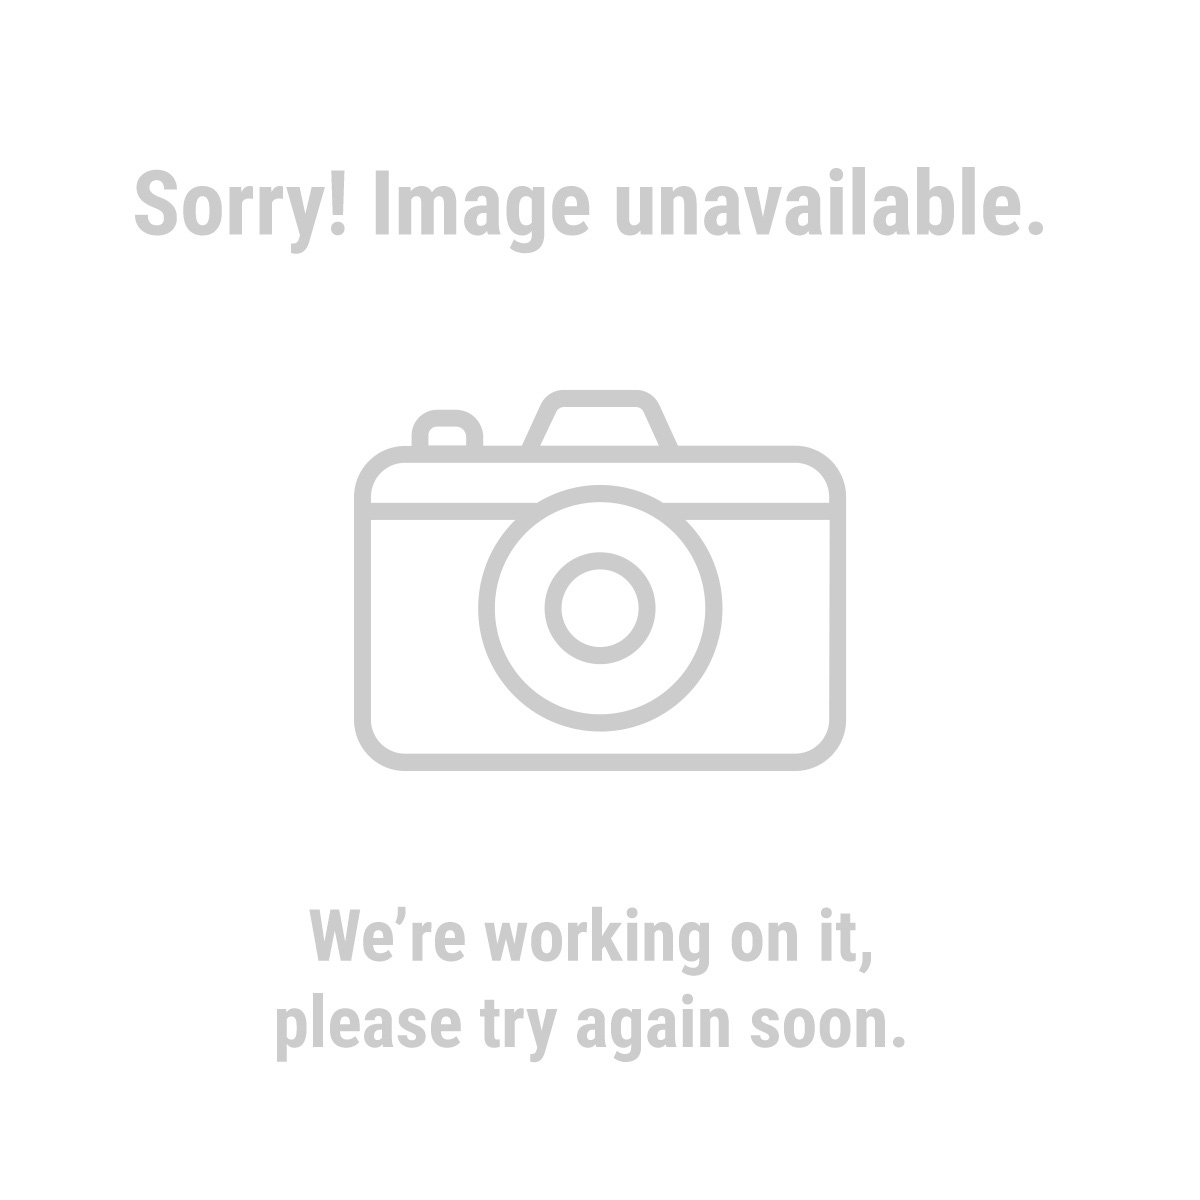 Portland 67255 9 Amp 14 in. Electric Chain Saw